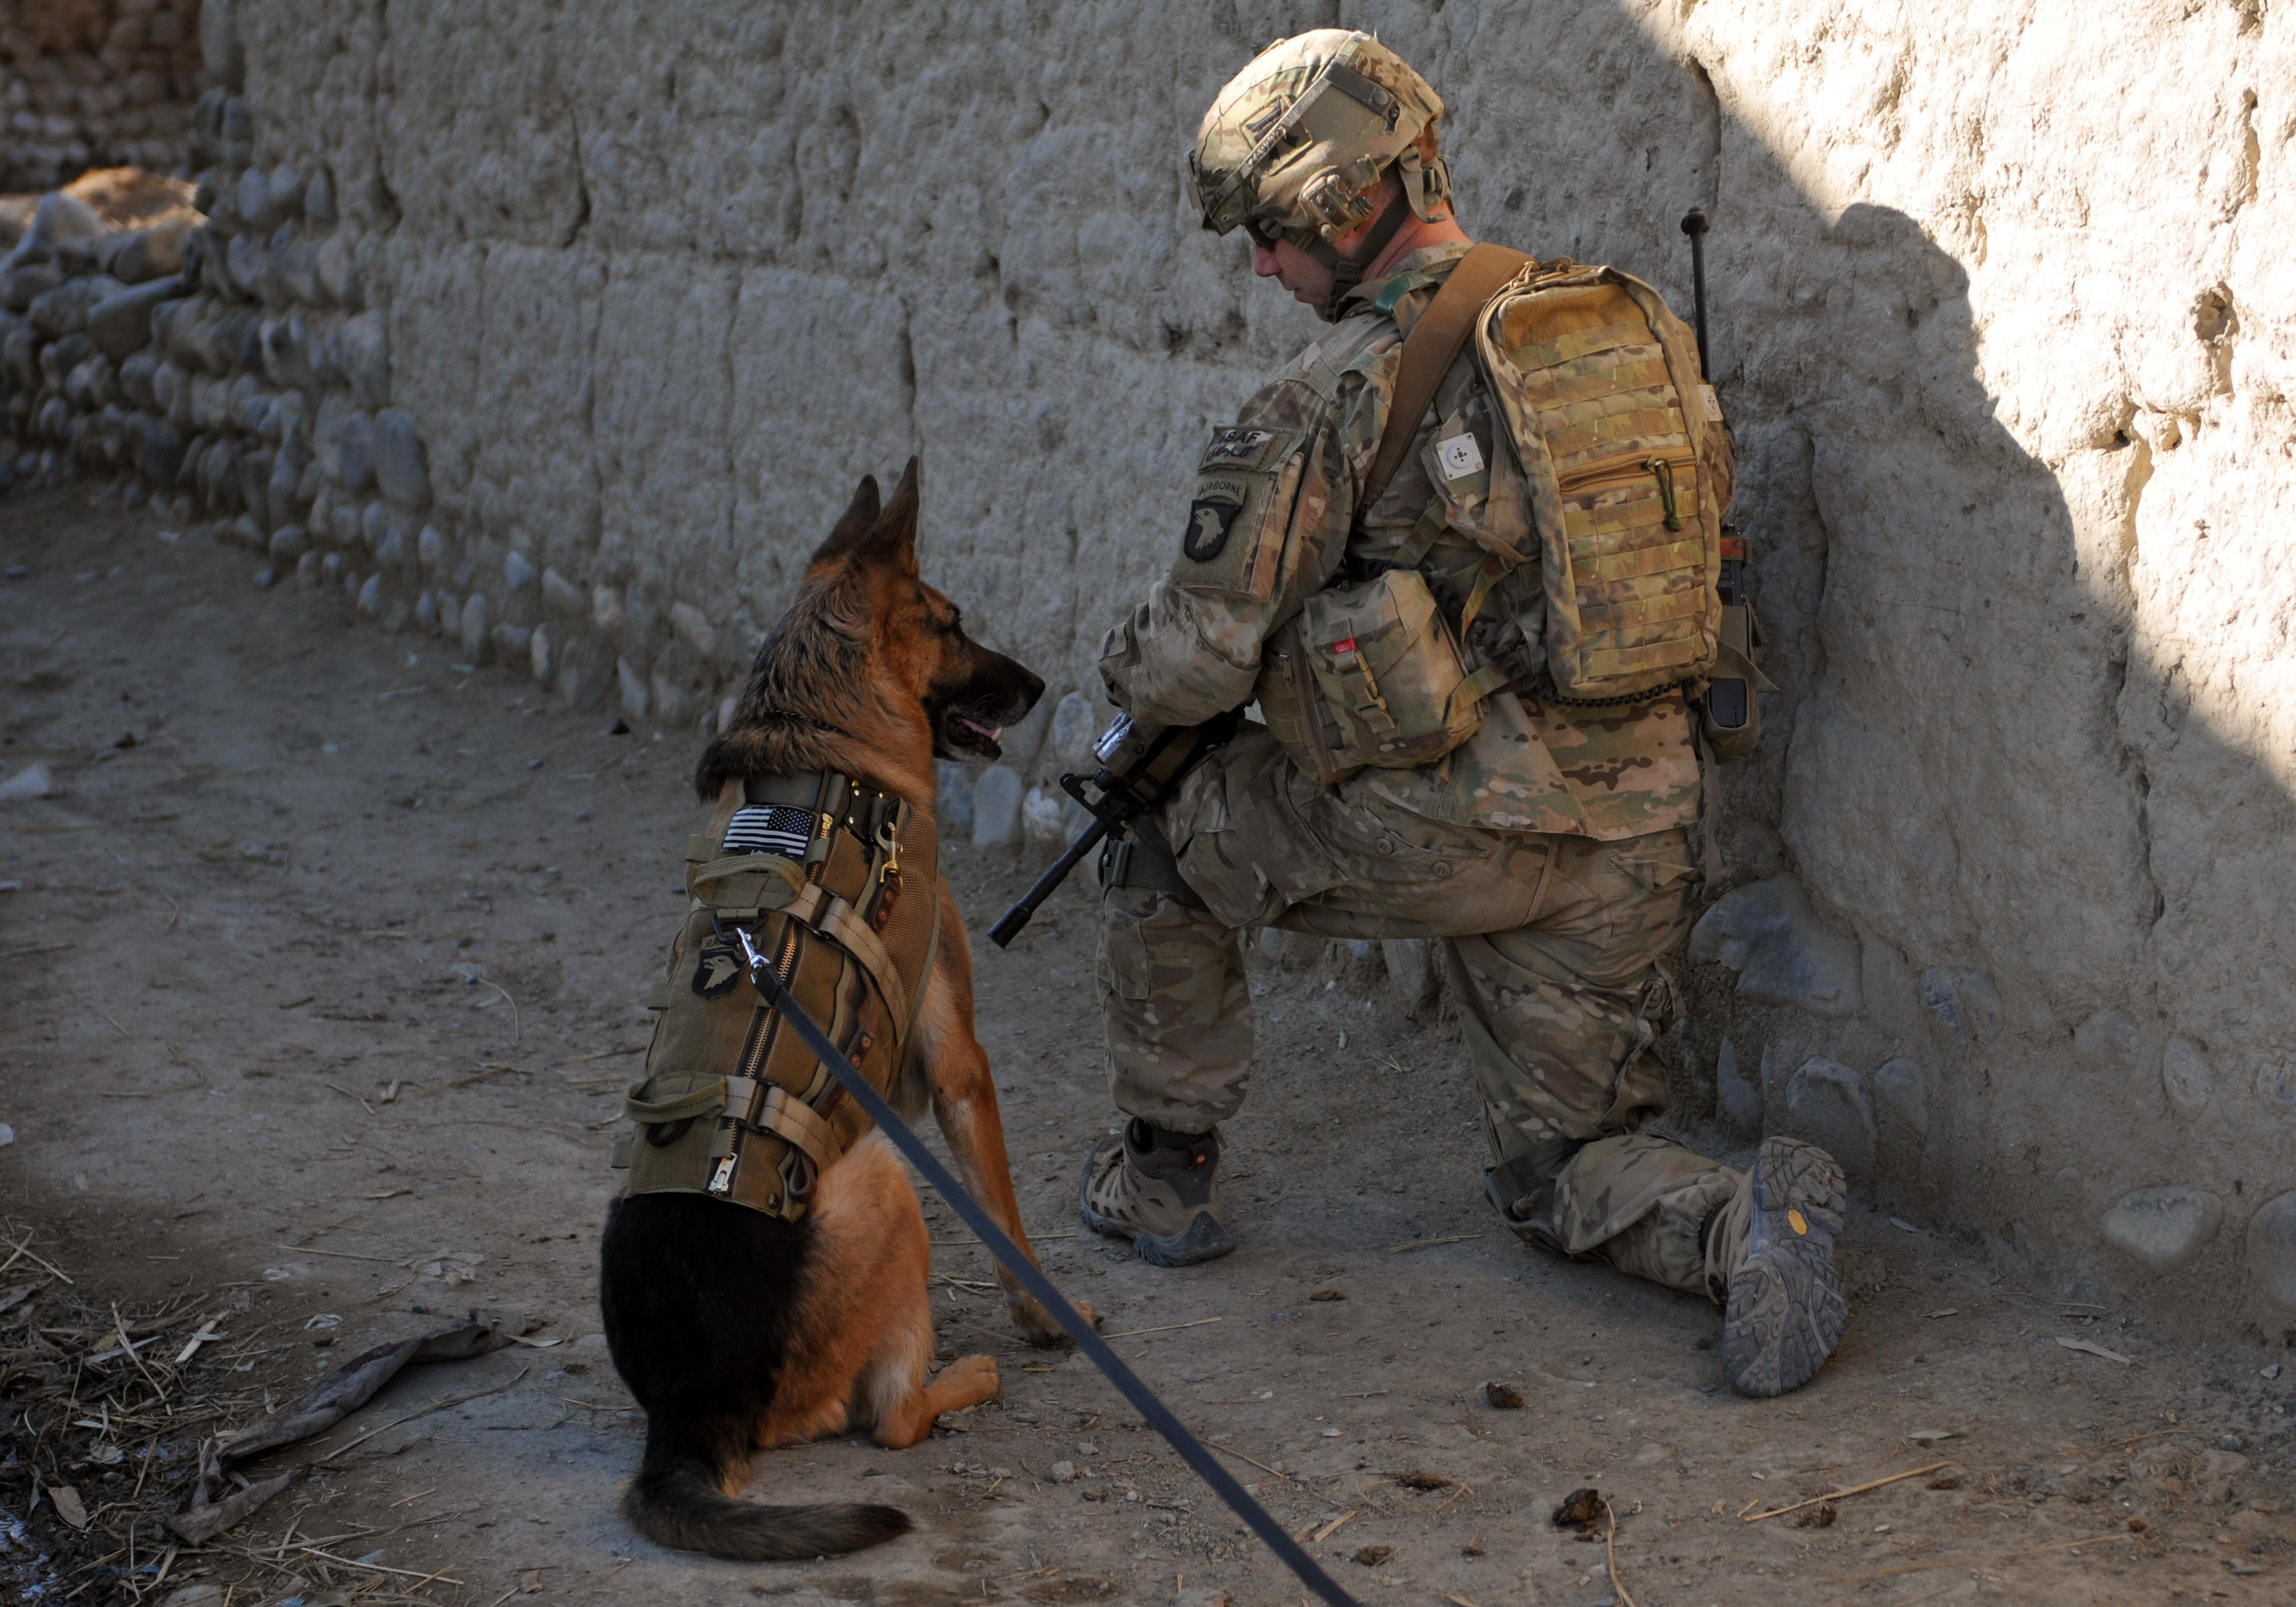 """U.S. Army 1st Sgt. Brian Zamiska, the company first sergeant for Delta Company, 3rd Battalion, 187th Infantry Regiment, 3rd Brigade Combat Team """"Rakkasans,"""" 101st Airborne Division (Air Assault), pulls security with a U.S. Air Force working dog, Jan. 6, 2013, during a patrol with the Afghan Border Police in Tera Zeyi district, Afghanistan. The ABP were looking for locals suspected of creating improvised explosive devices. (U.S. Army photo by Spc. Alex Kirk Amen, 115th Mobile Public Affairs Detachment)"""